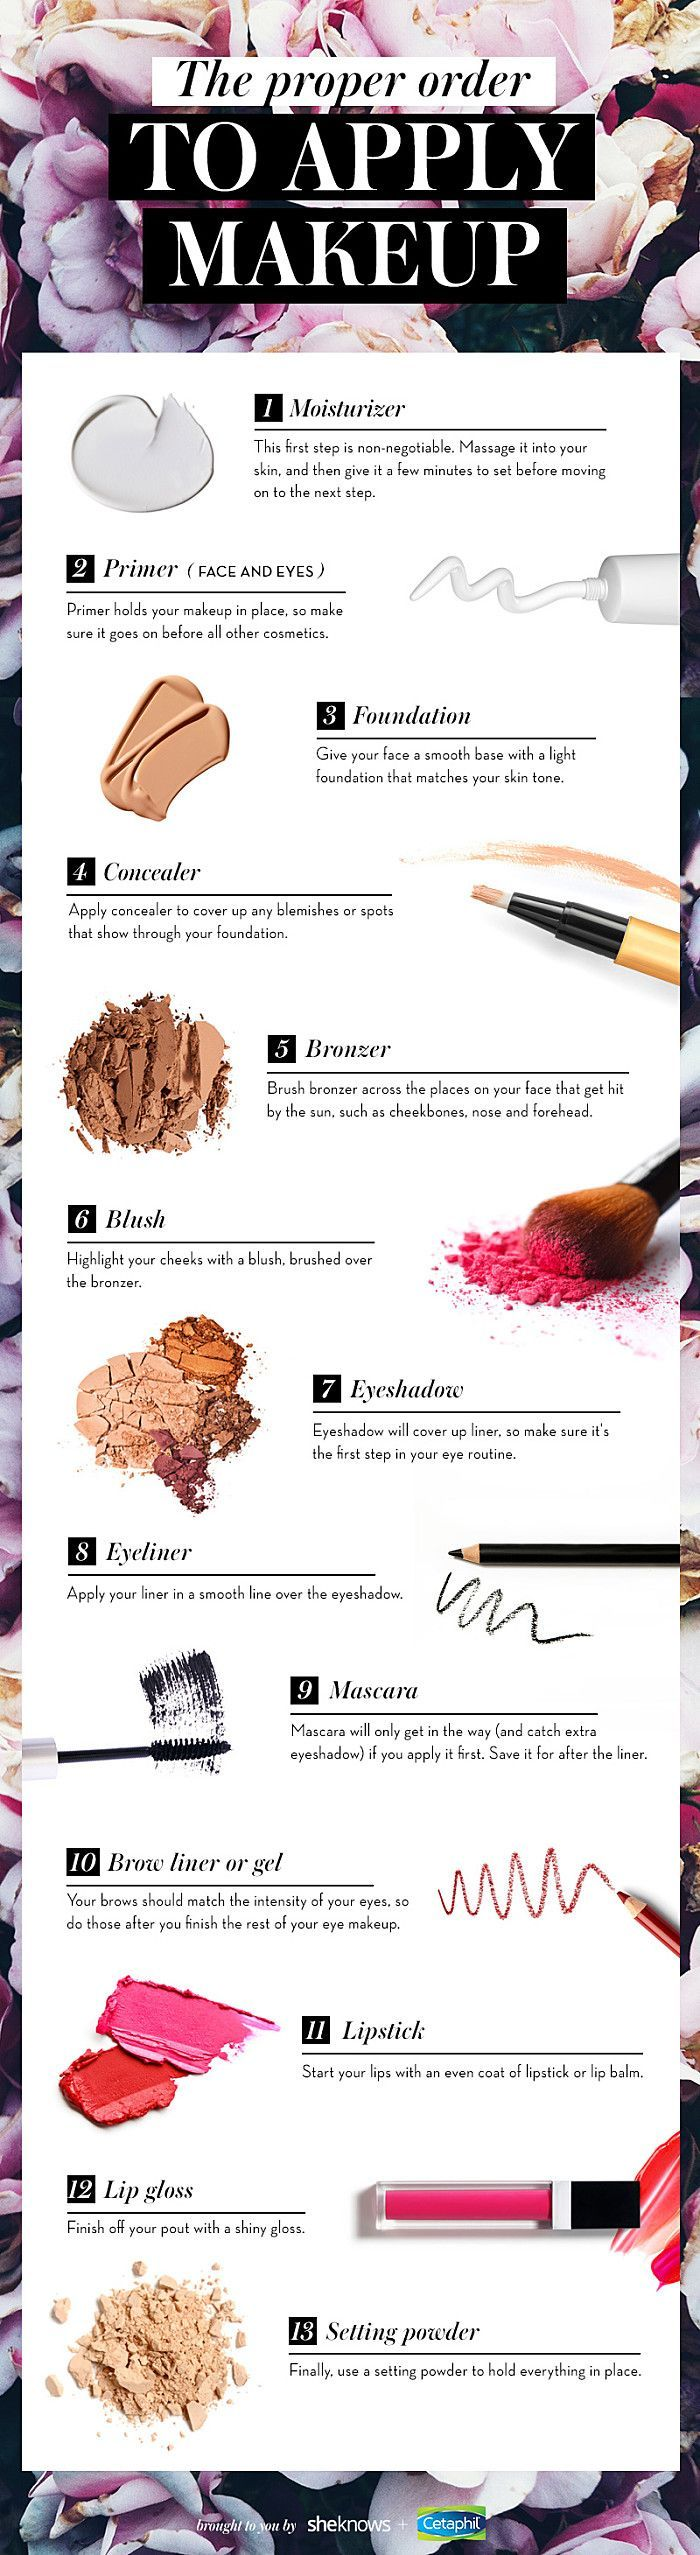 Yes, There Is a Correct Makeup Application Order, and This Is It